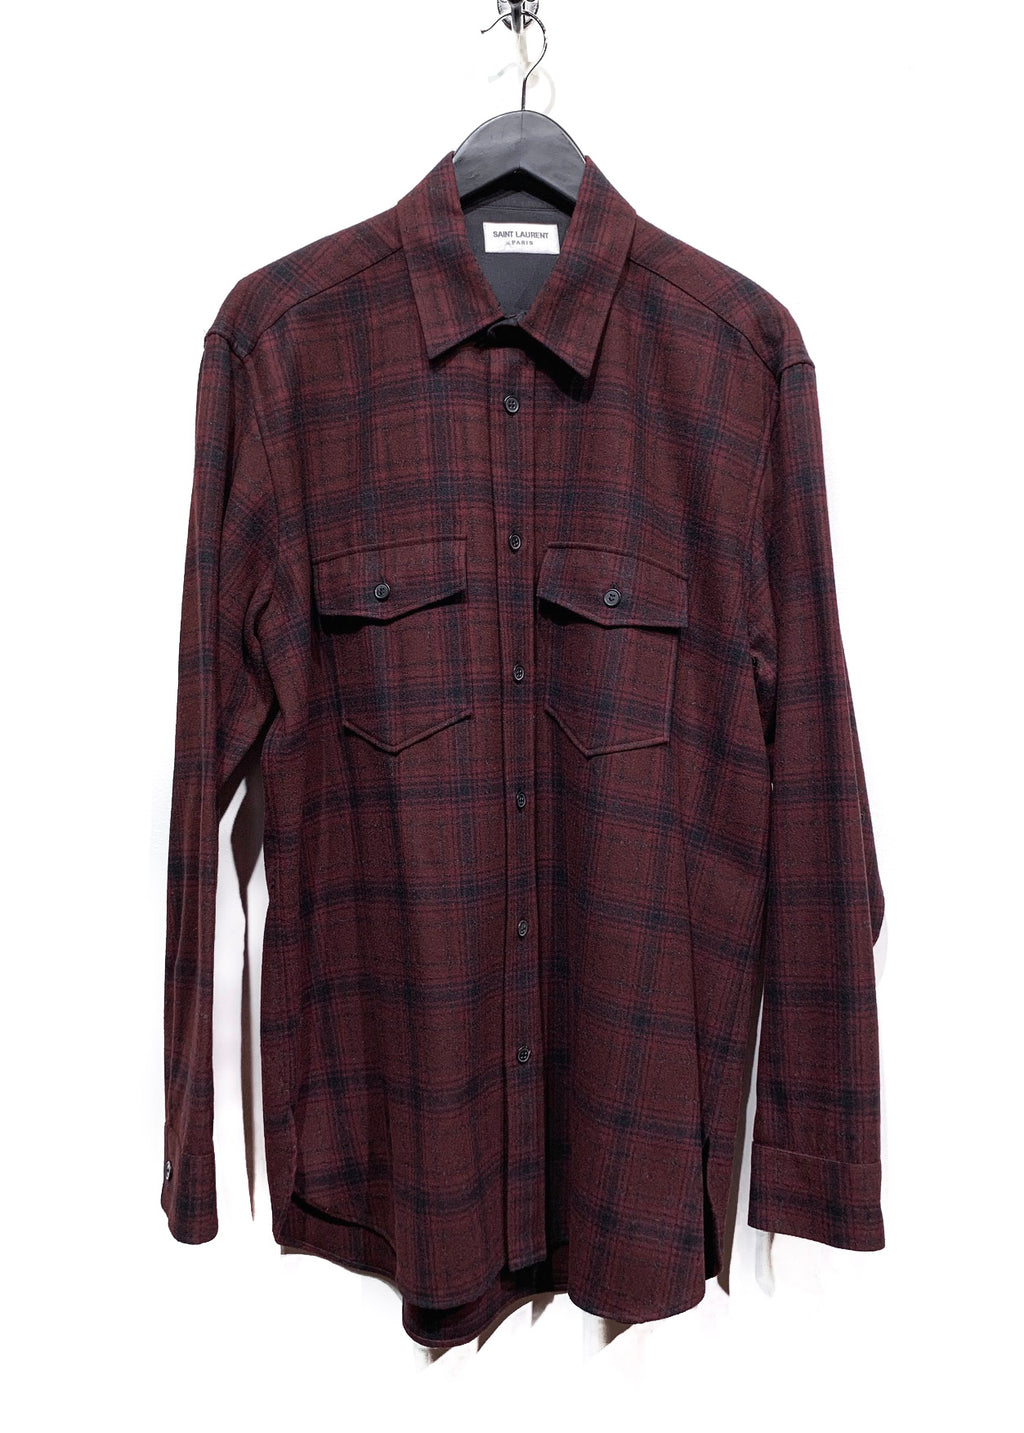 Saint Laurent Burgundy Wool Checked Shirt